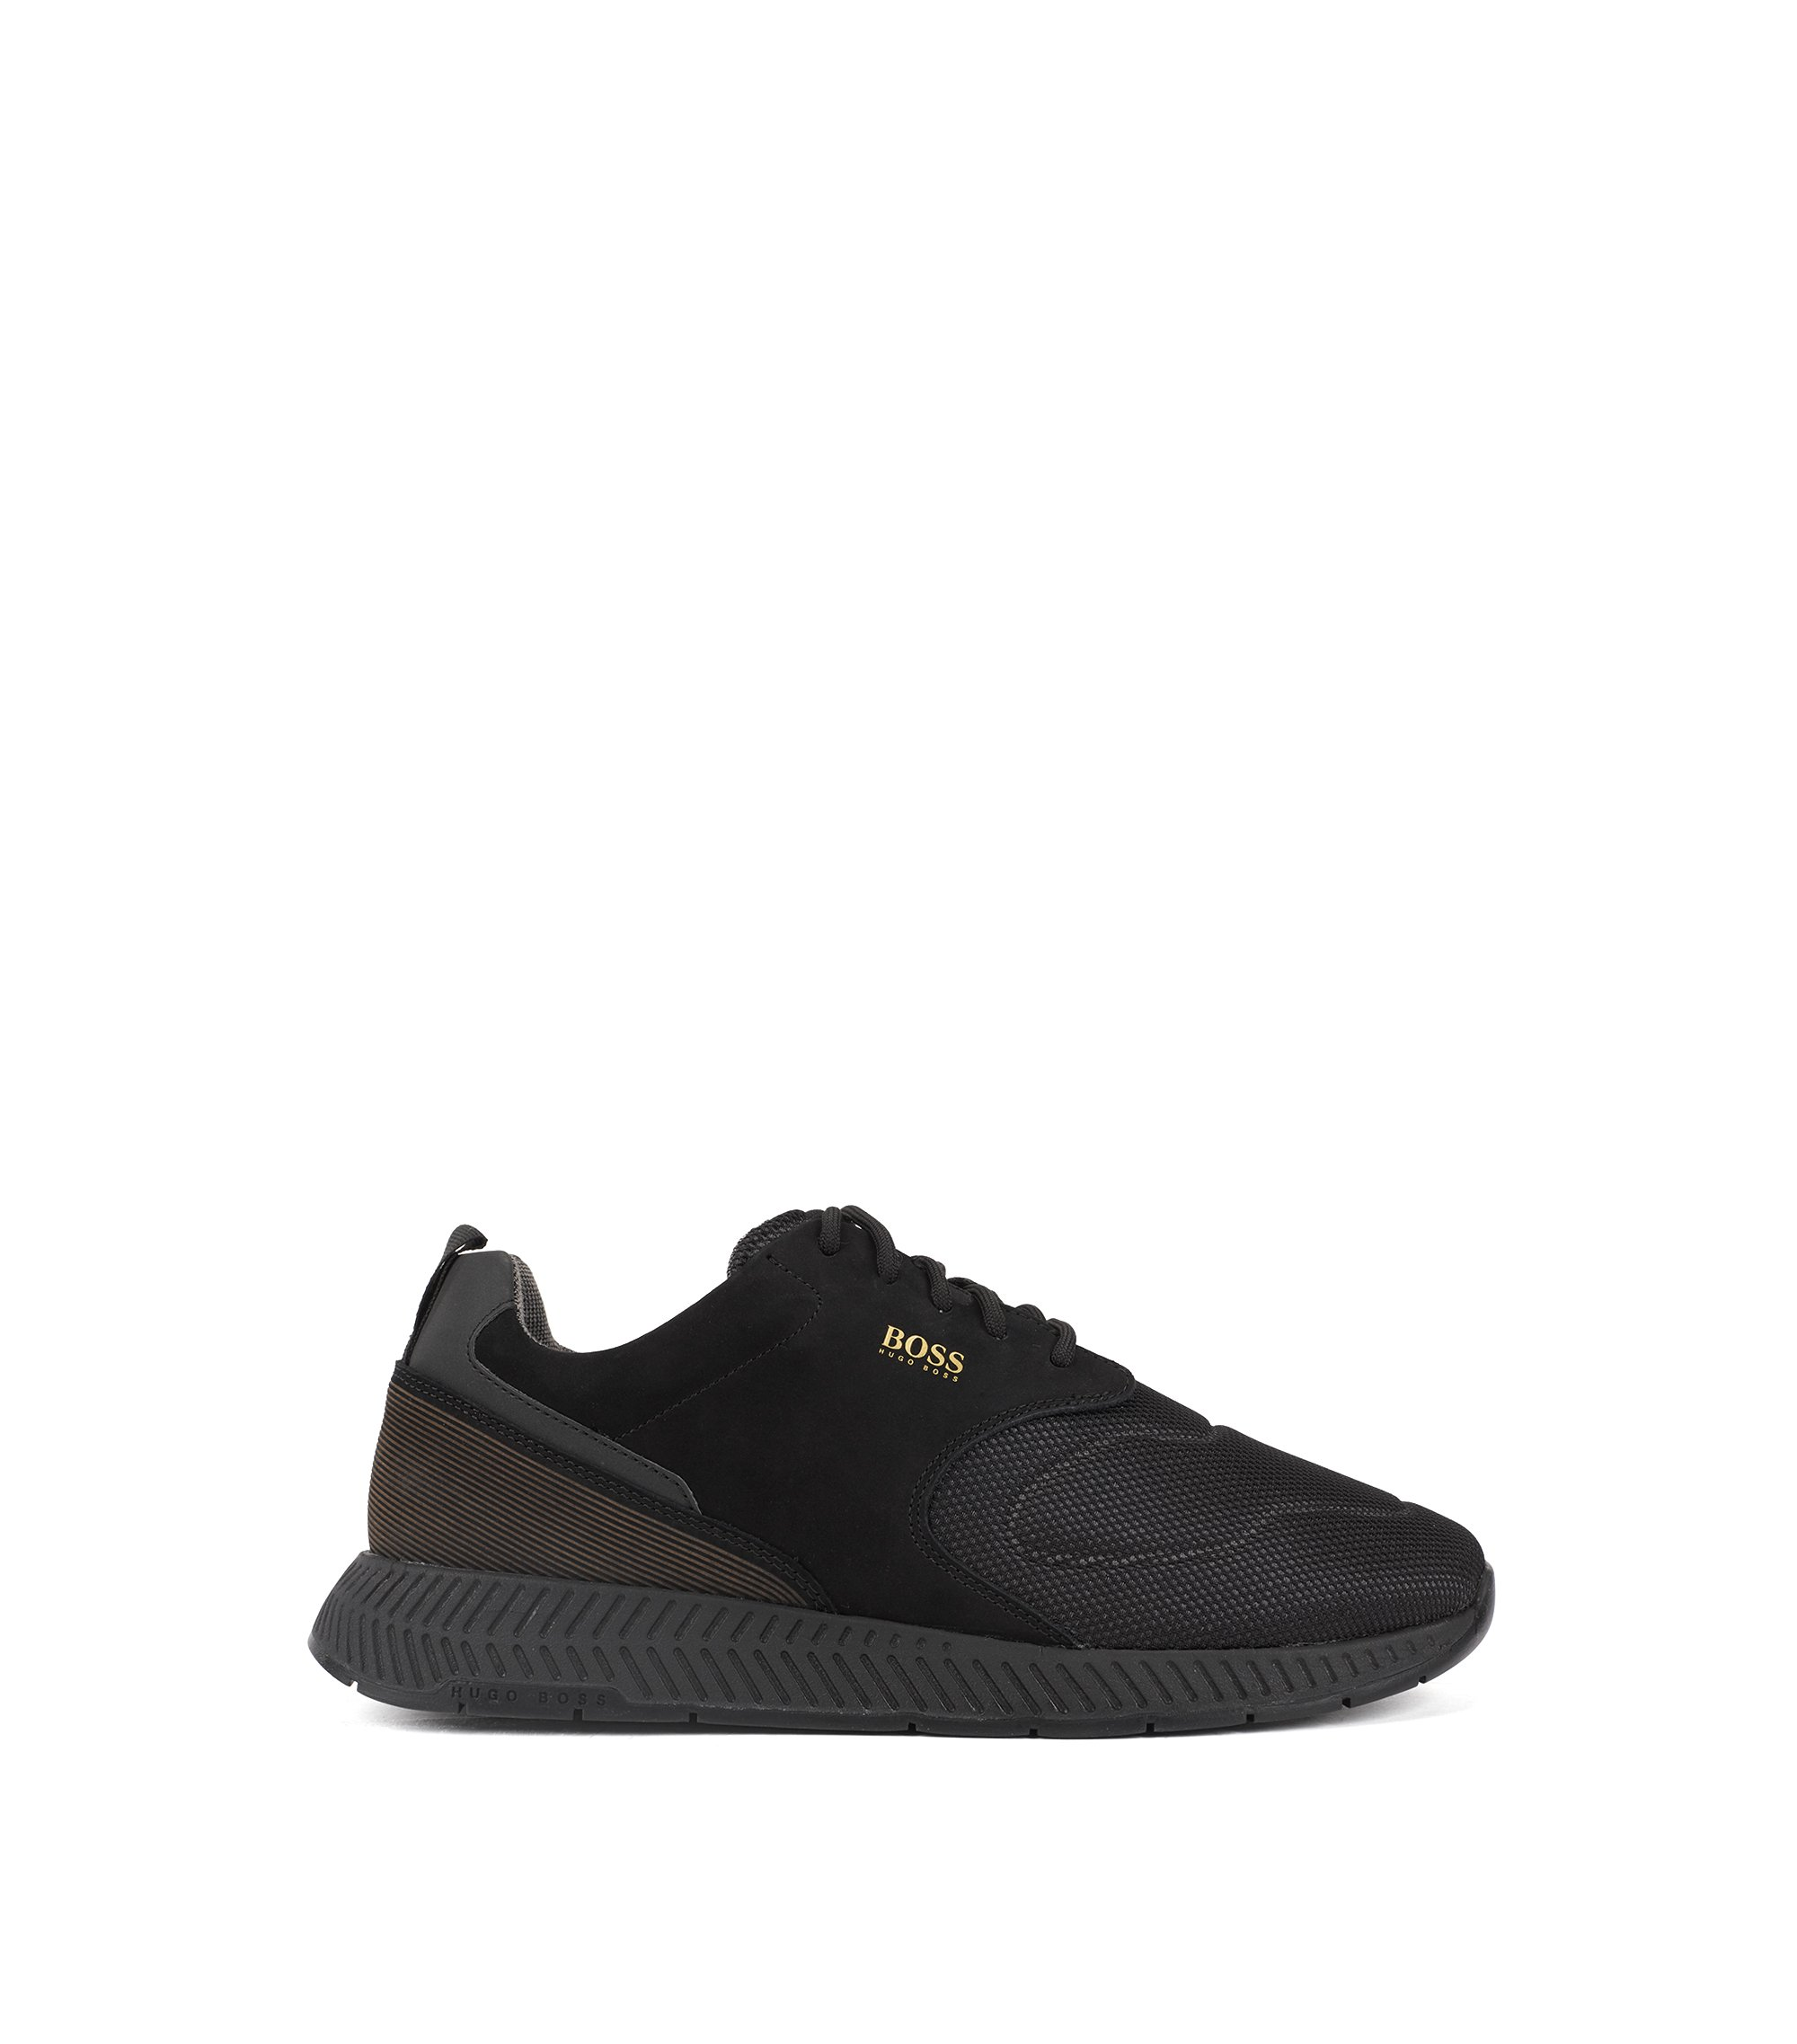 Running-inspired trainers in nubuck leather and technical fabric, Black